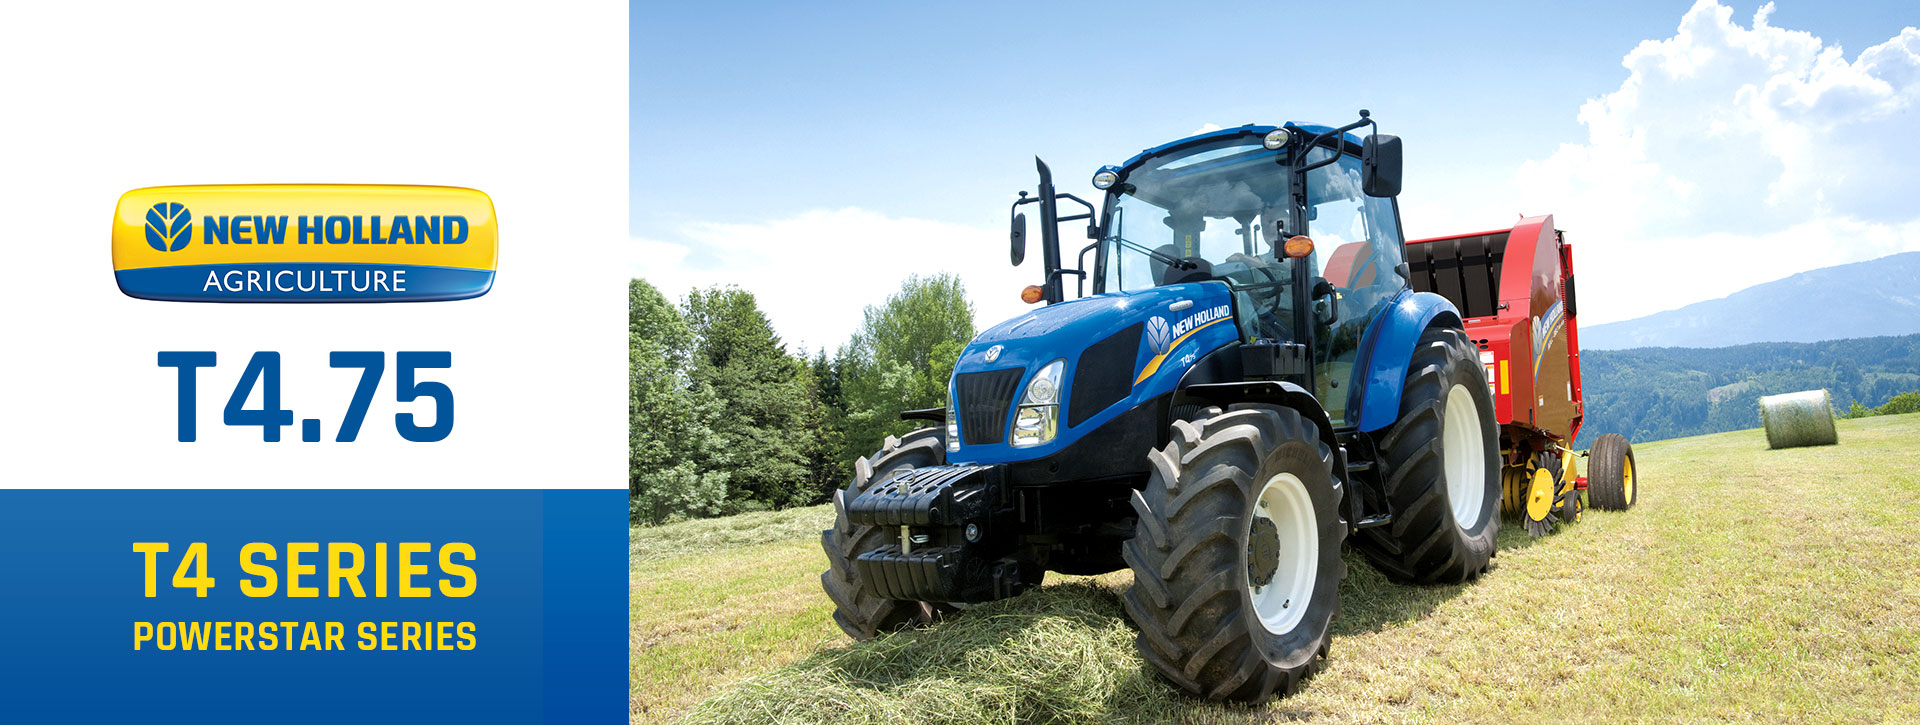 NEW HOLLAND T425